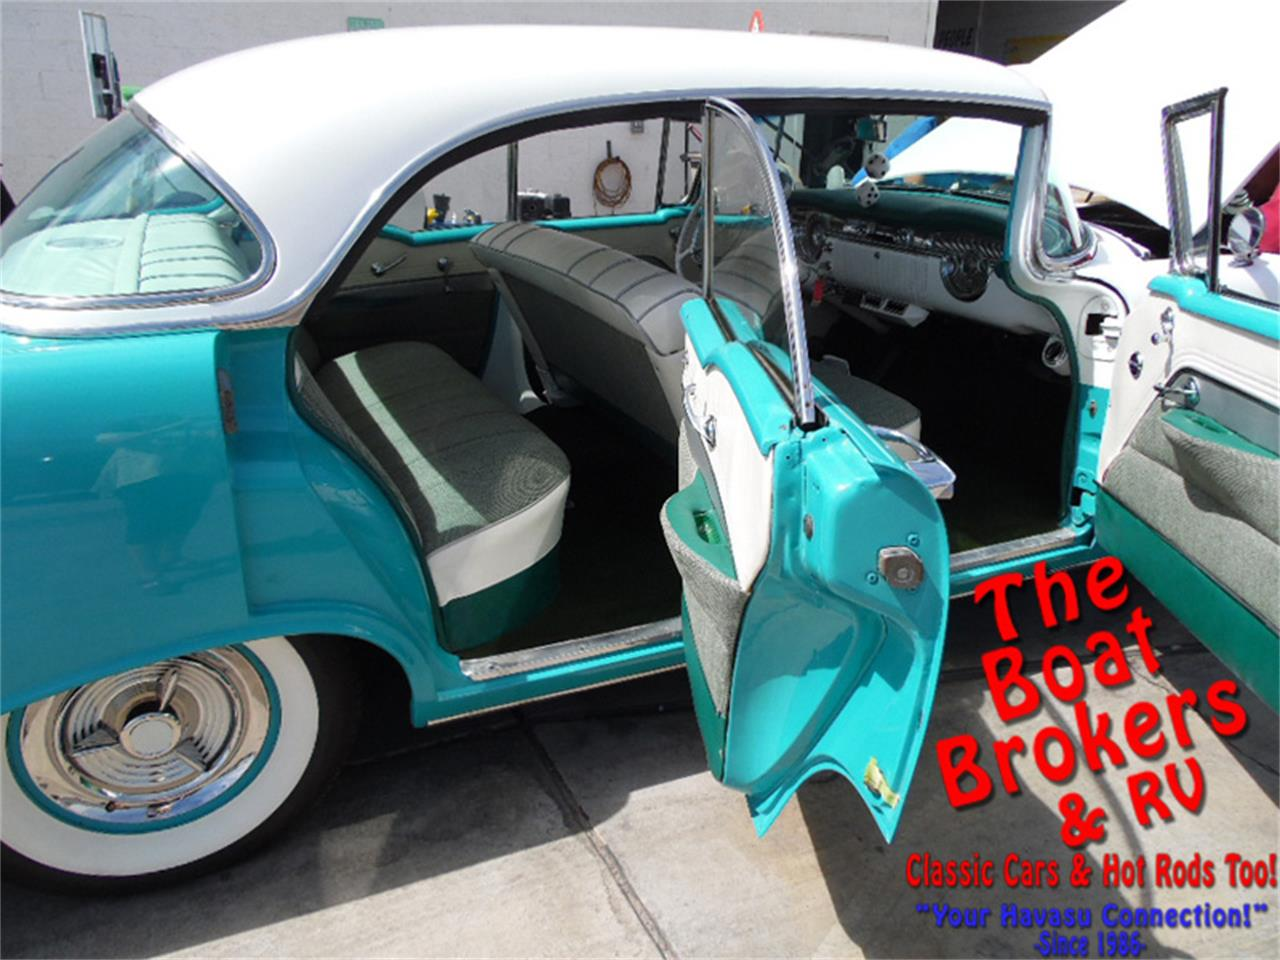 Large Picture of Classic 1955 Oldsmobile Holiday Rocket 88 located in Arizona Offered by The Boat Brokers - N2PY